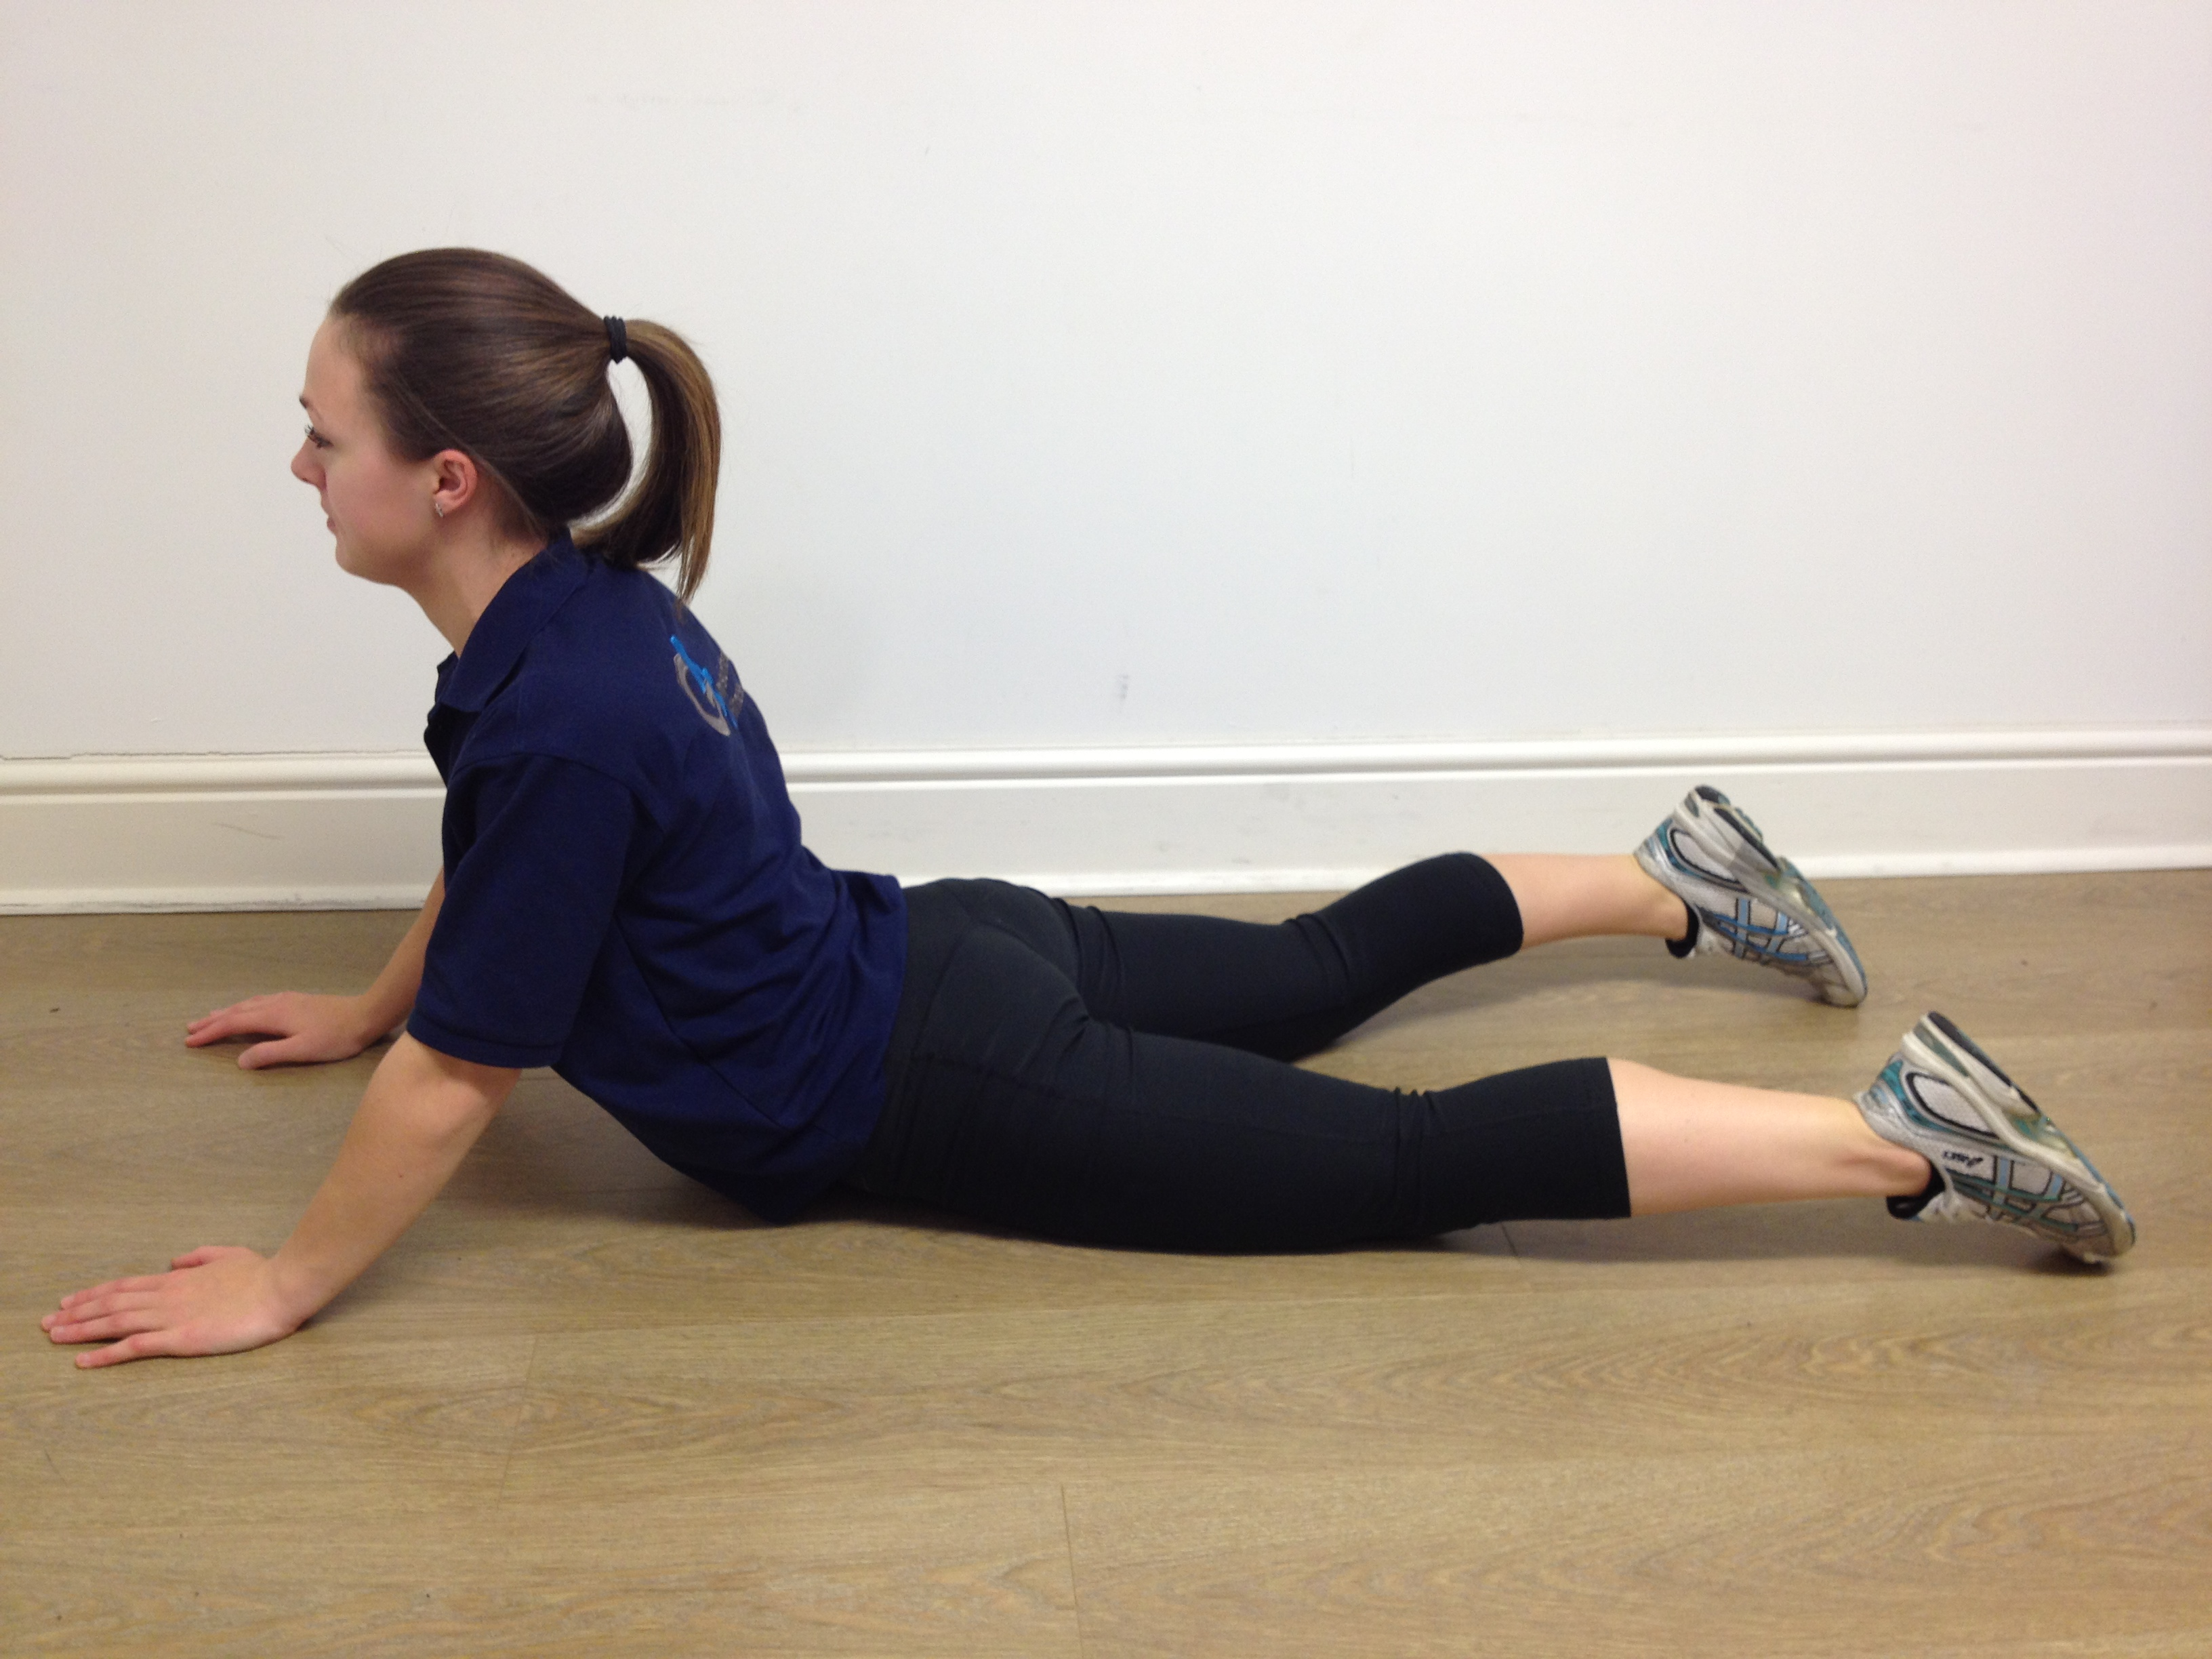 Abdominal Stretch on abdominals exercises